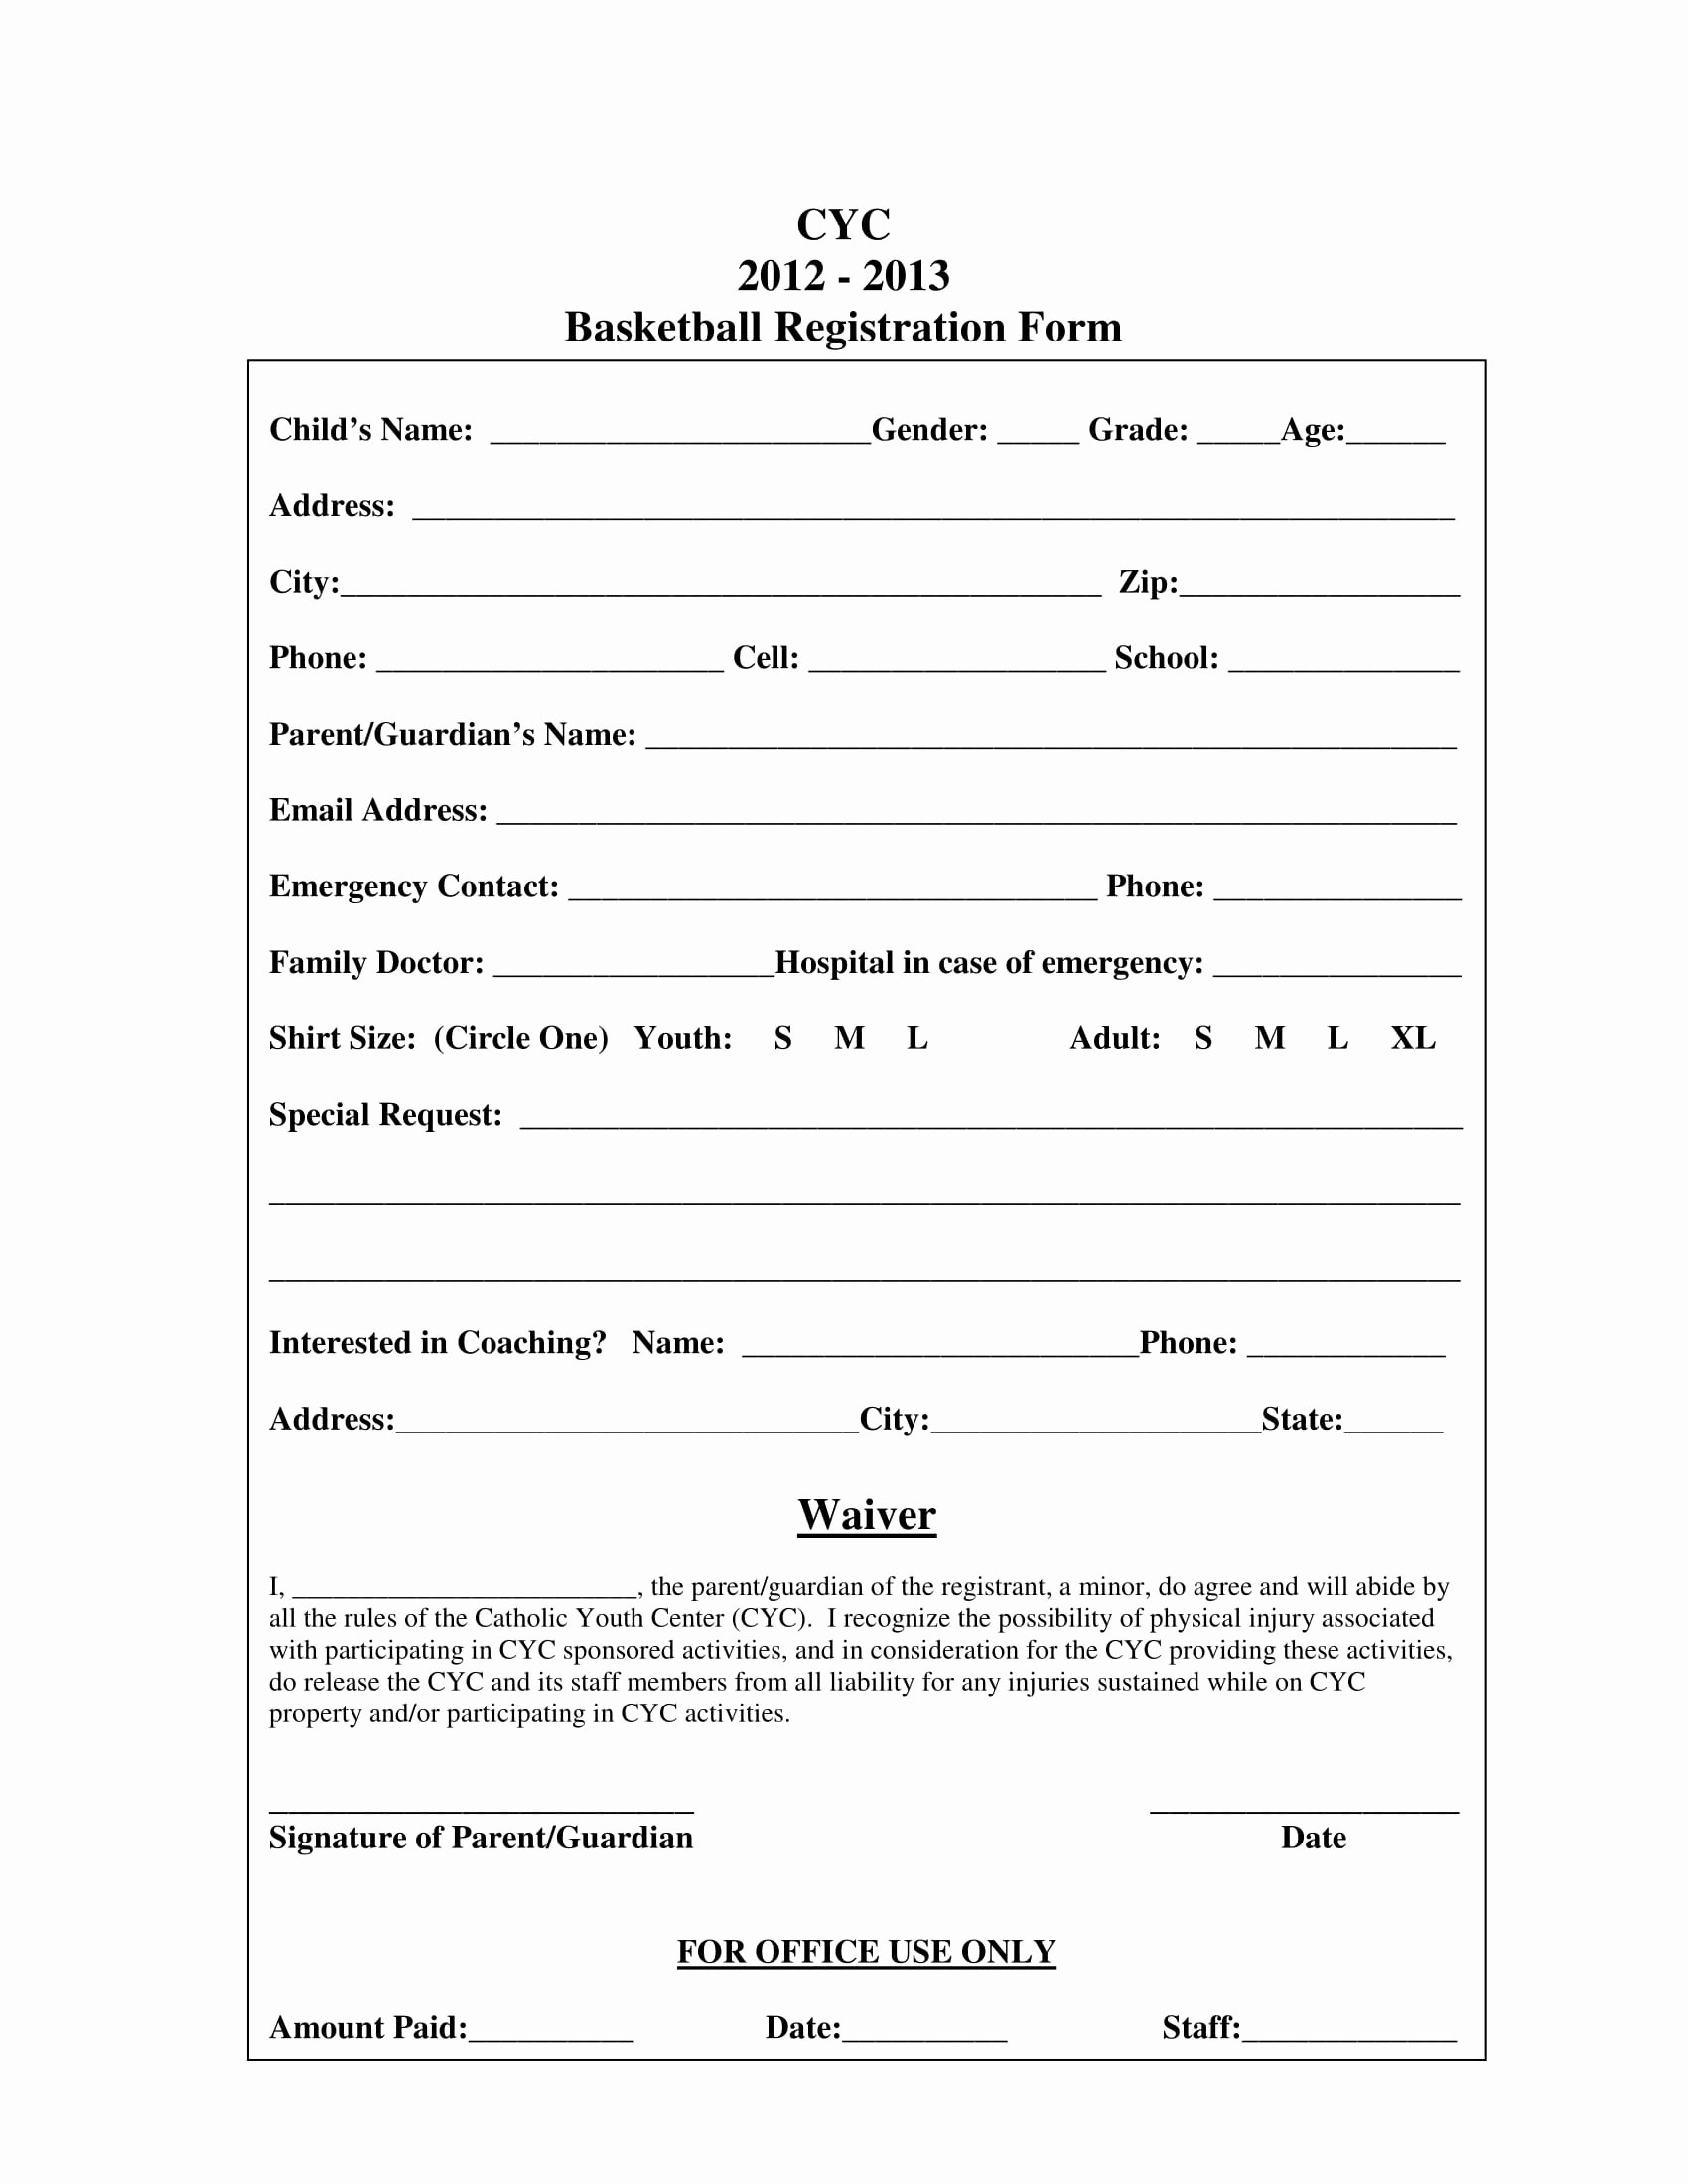 Camp Registration form Template Word Beautiful 10 Basketball Registration form Samples